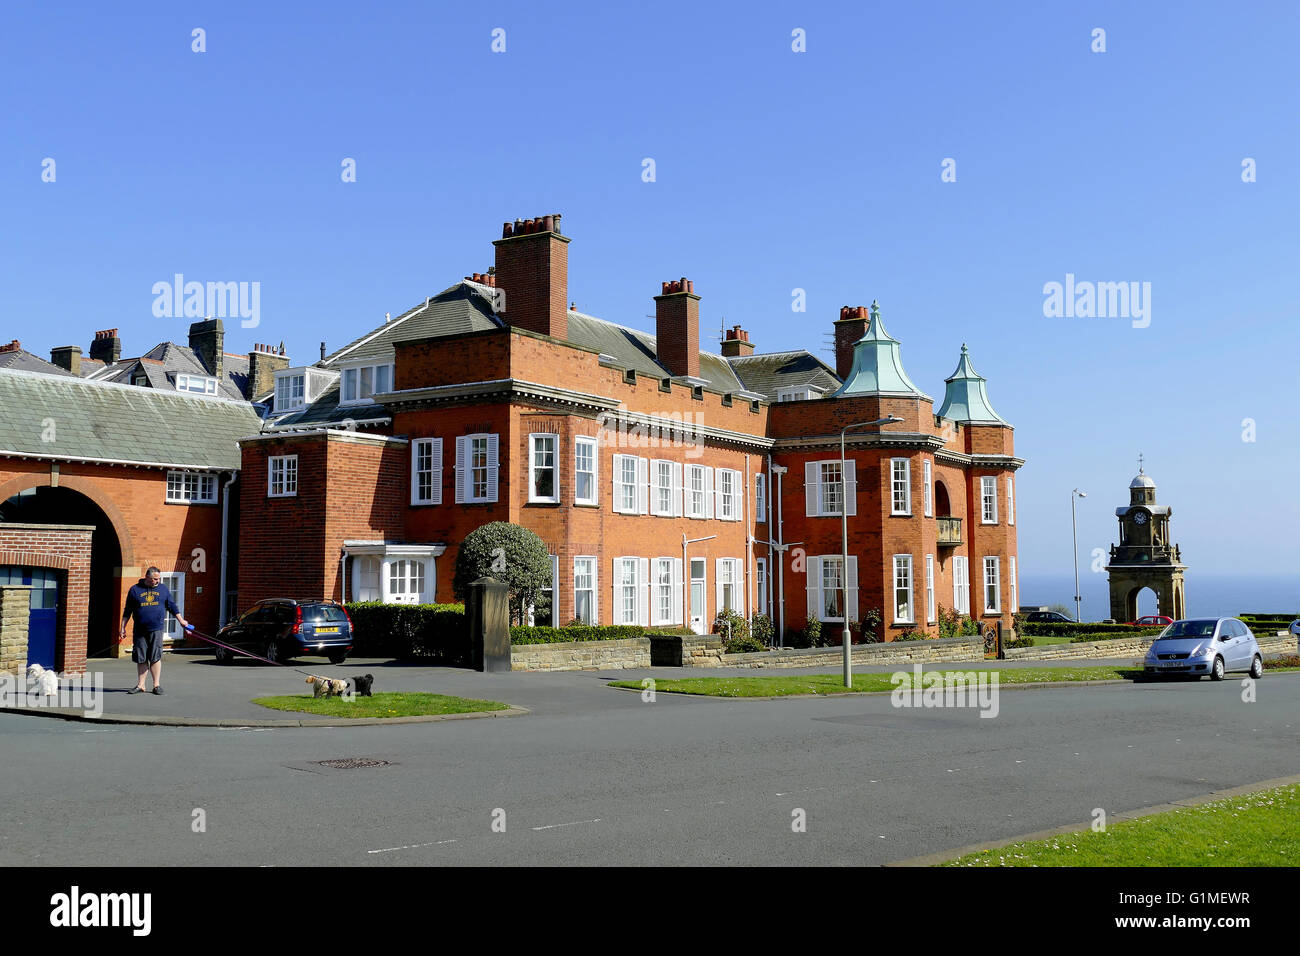 SCARBOROUGH, YORKSHIRE, UK. MAY 09, 2016.  The hospital film location for ' The Royal ' television series - Stock Image